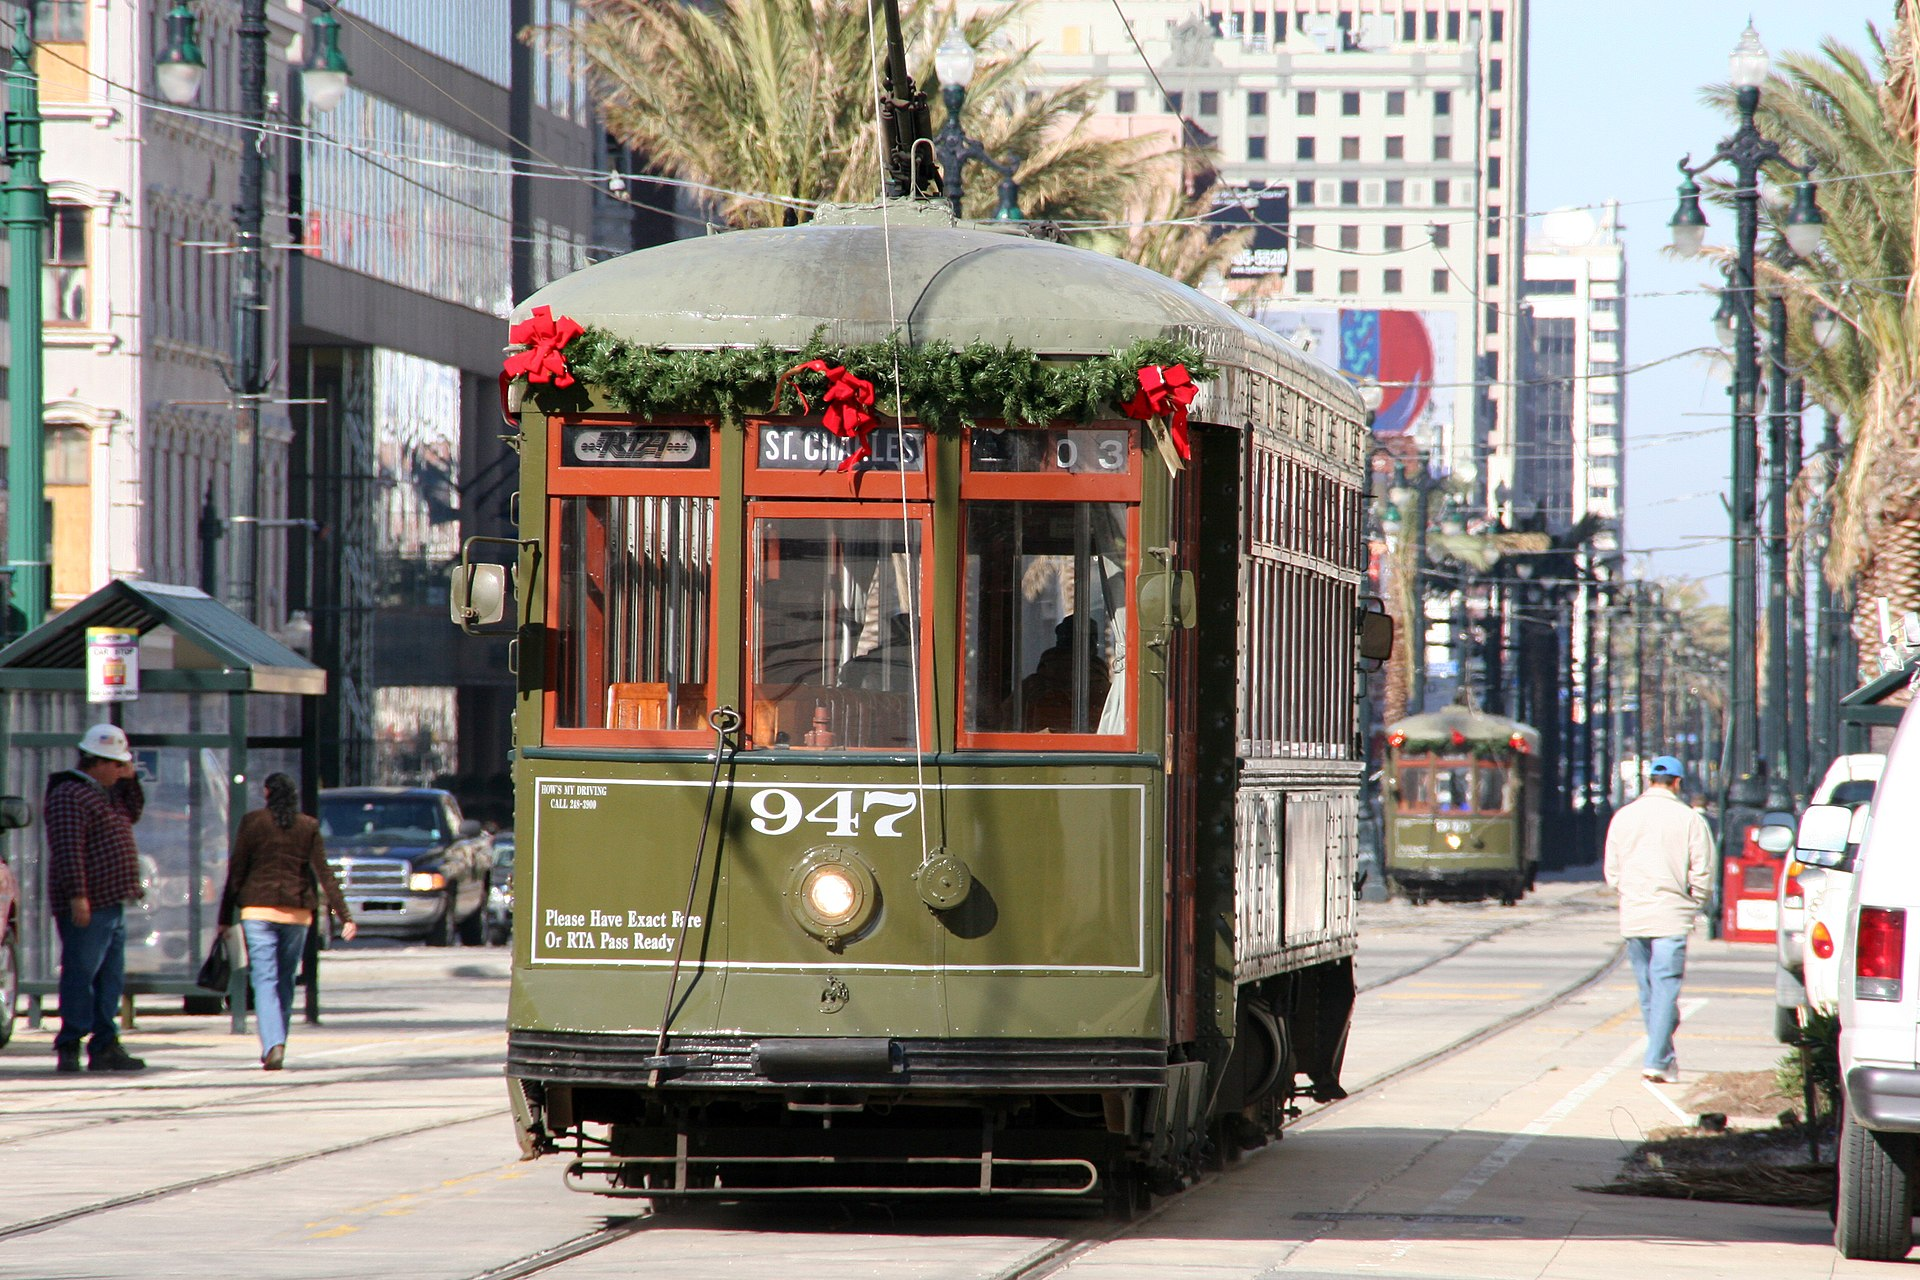 streetcars in new orleans wikipedia. Black Bedroom Furniture Sets. Home Design Ideas